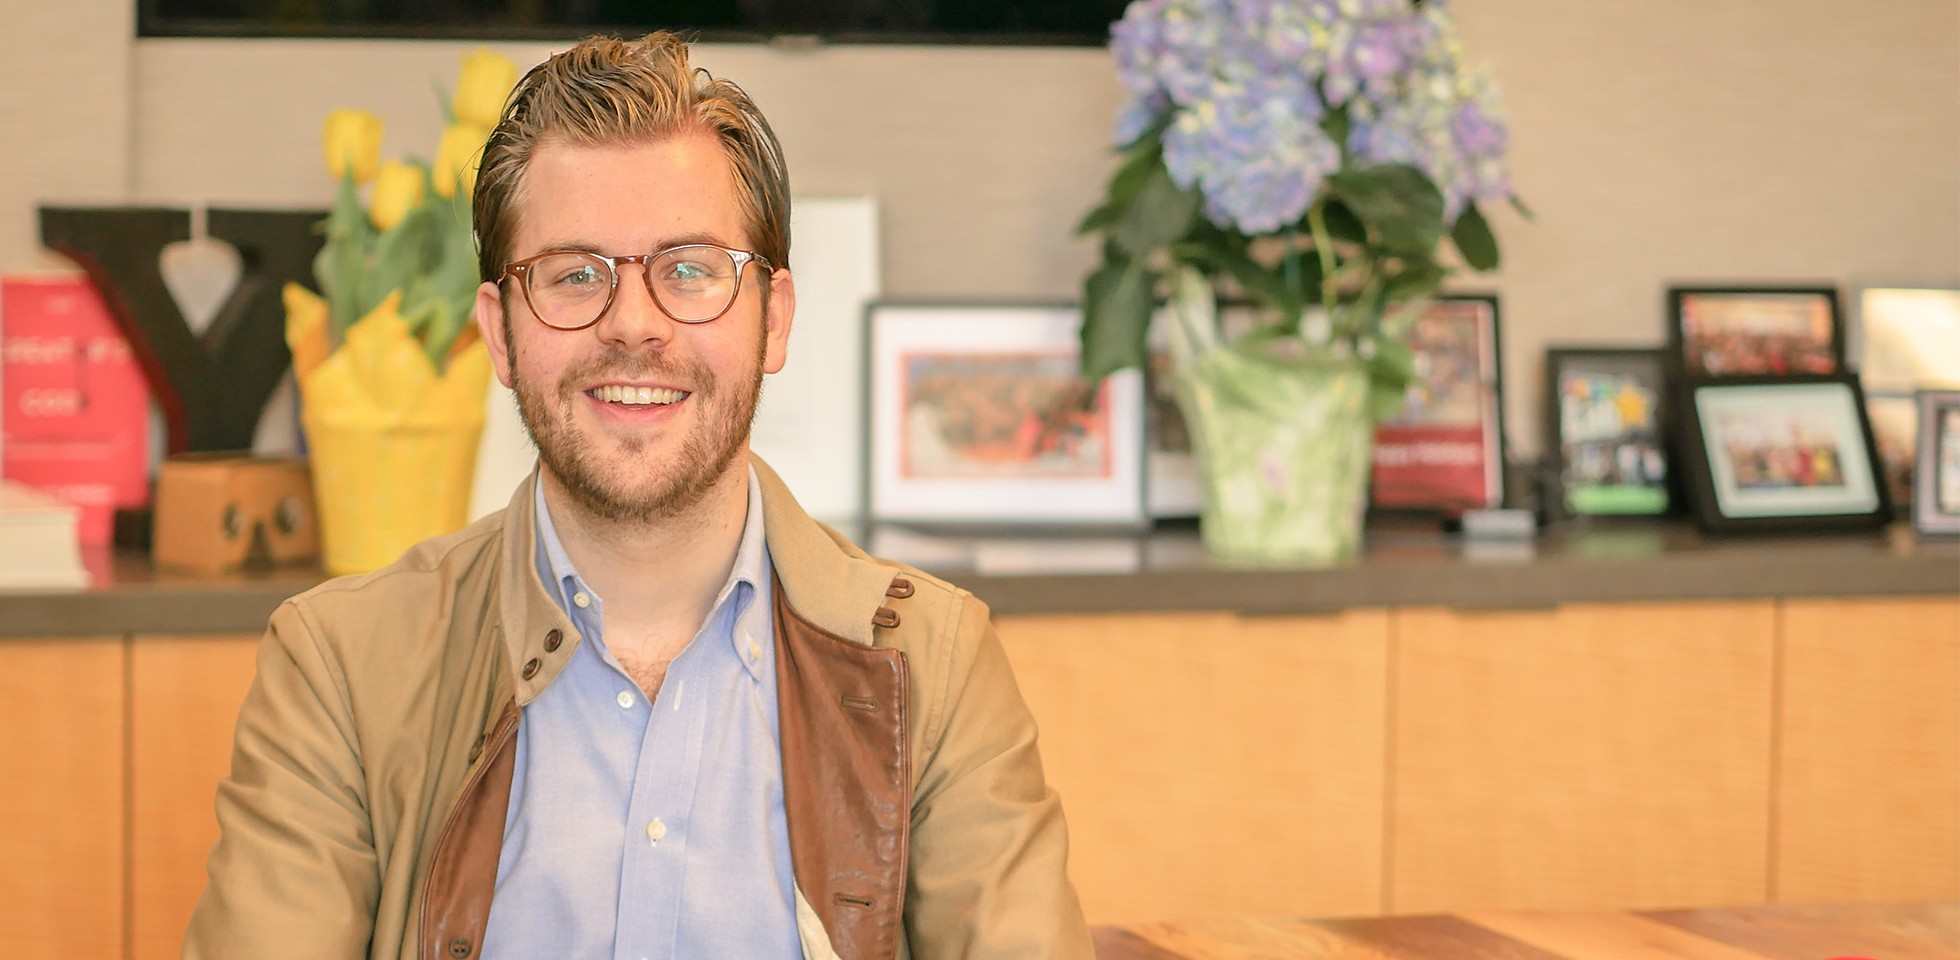 Steijn Pelle, Product Manager for Growth - HealthTap Careers